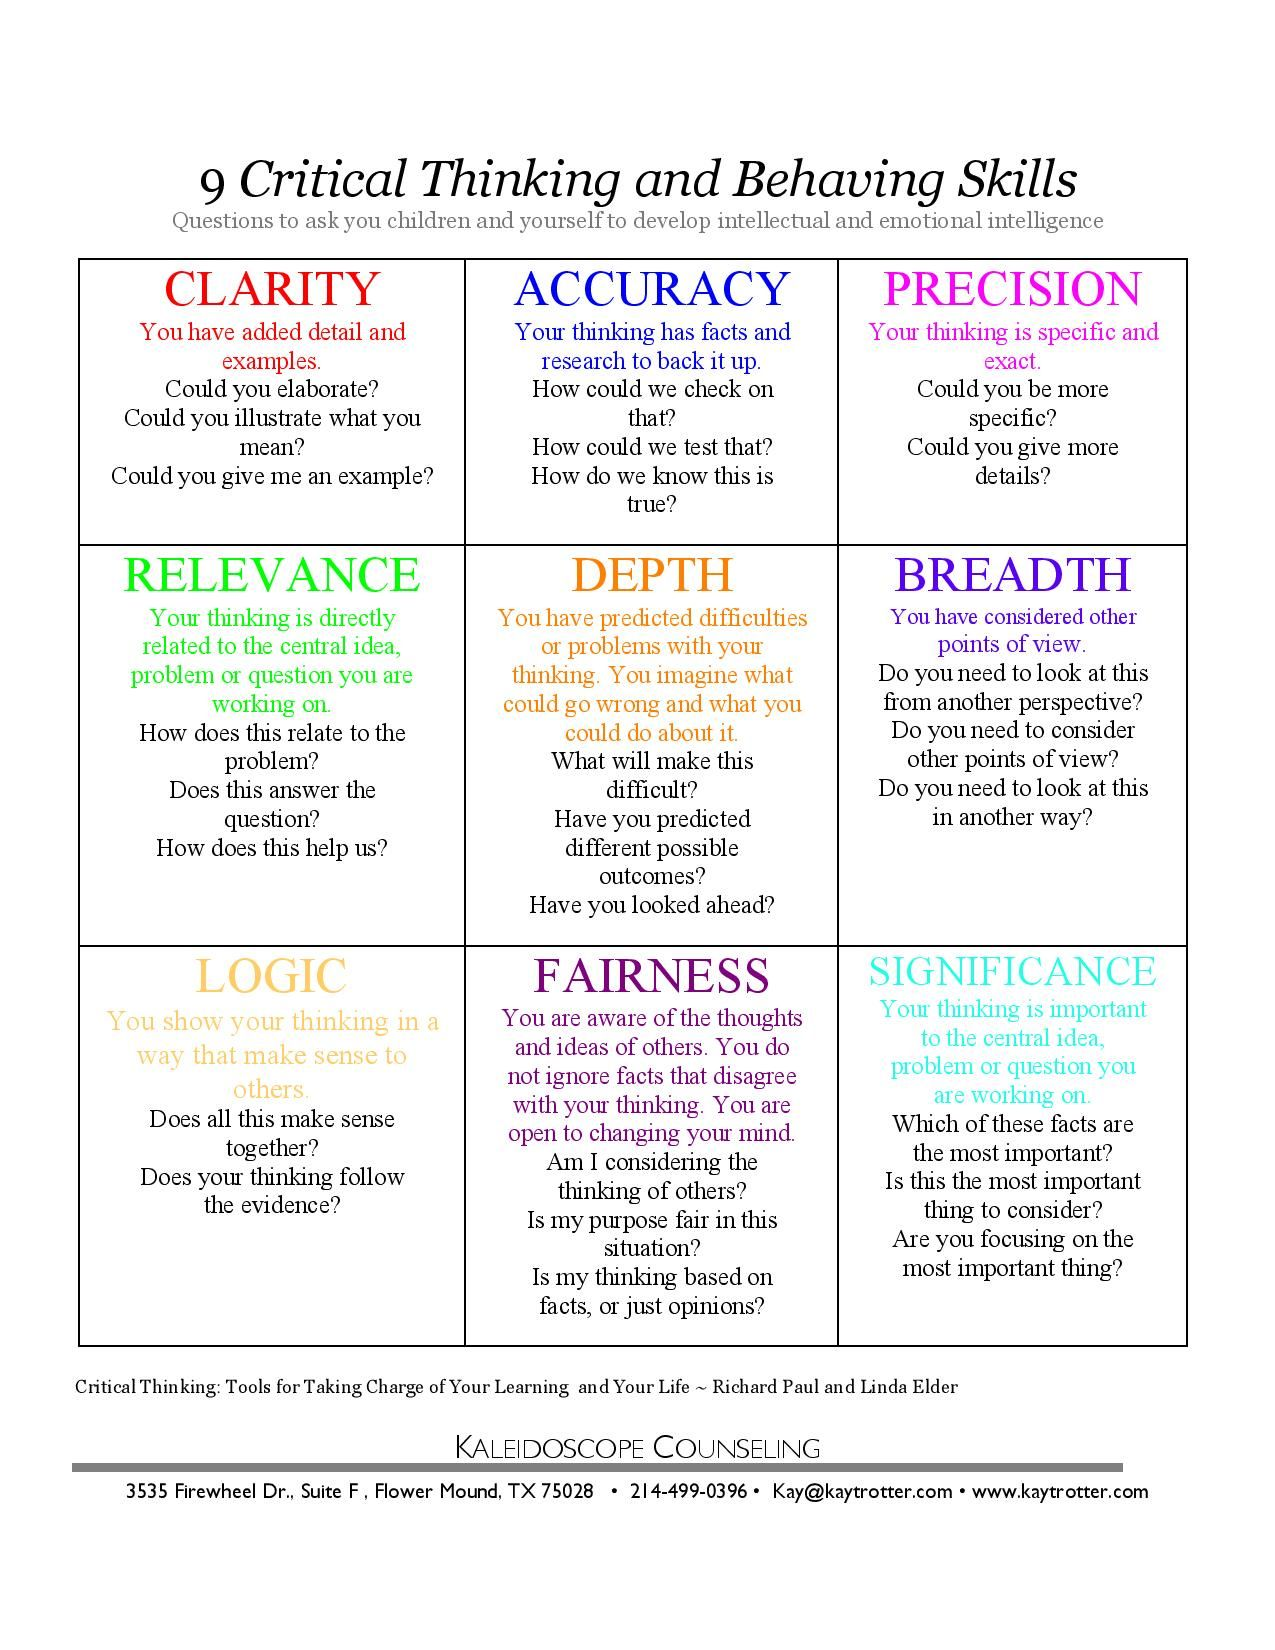 9 Critical Thinking And Behaving Skills Questions To Ask